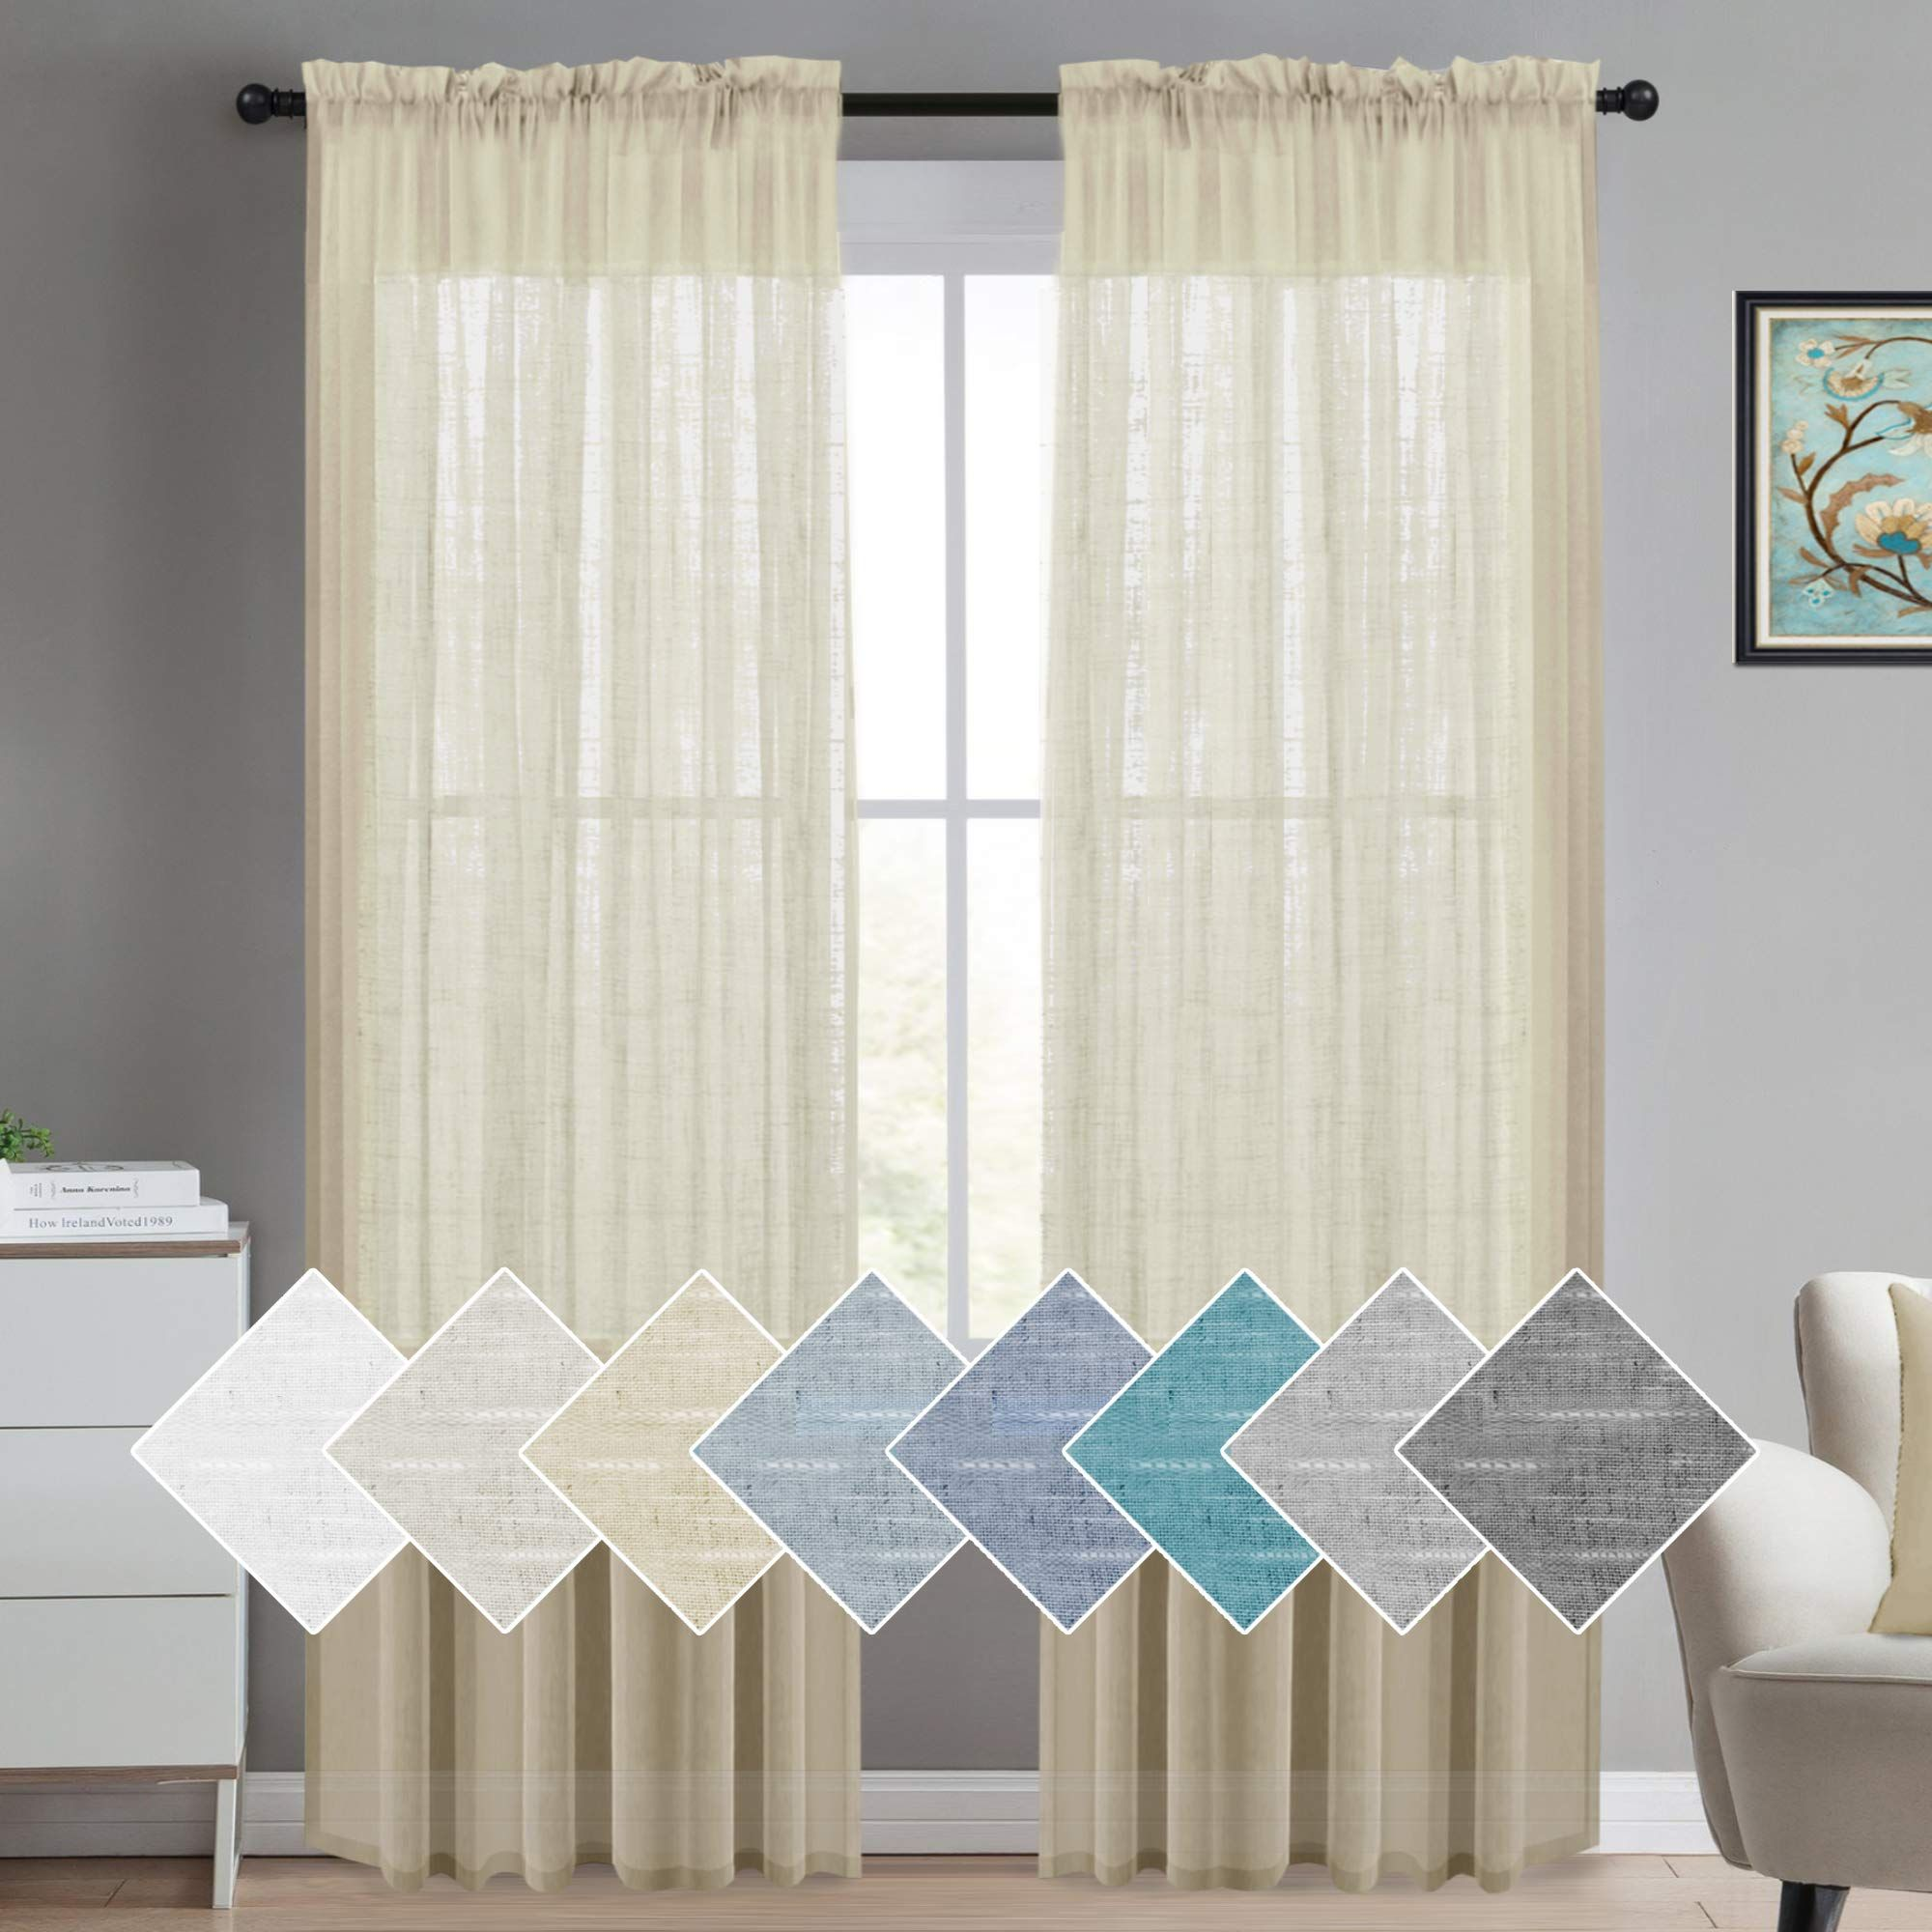 Turquoize Elegant Natural Linen Curtain Panels 96 Inches Long Beige Linen Sheer Curtains Sheers Curtains Living Room White Sheer Curtains Curtains Living Room